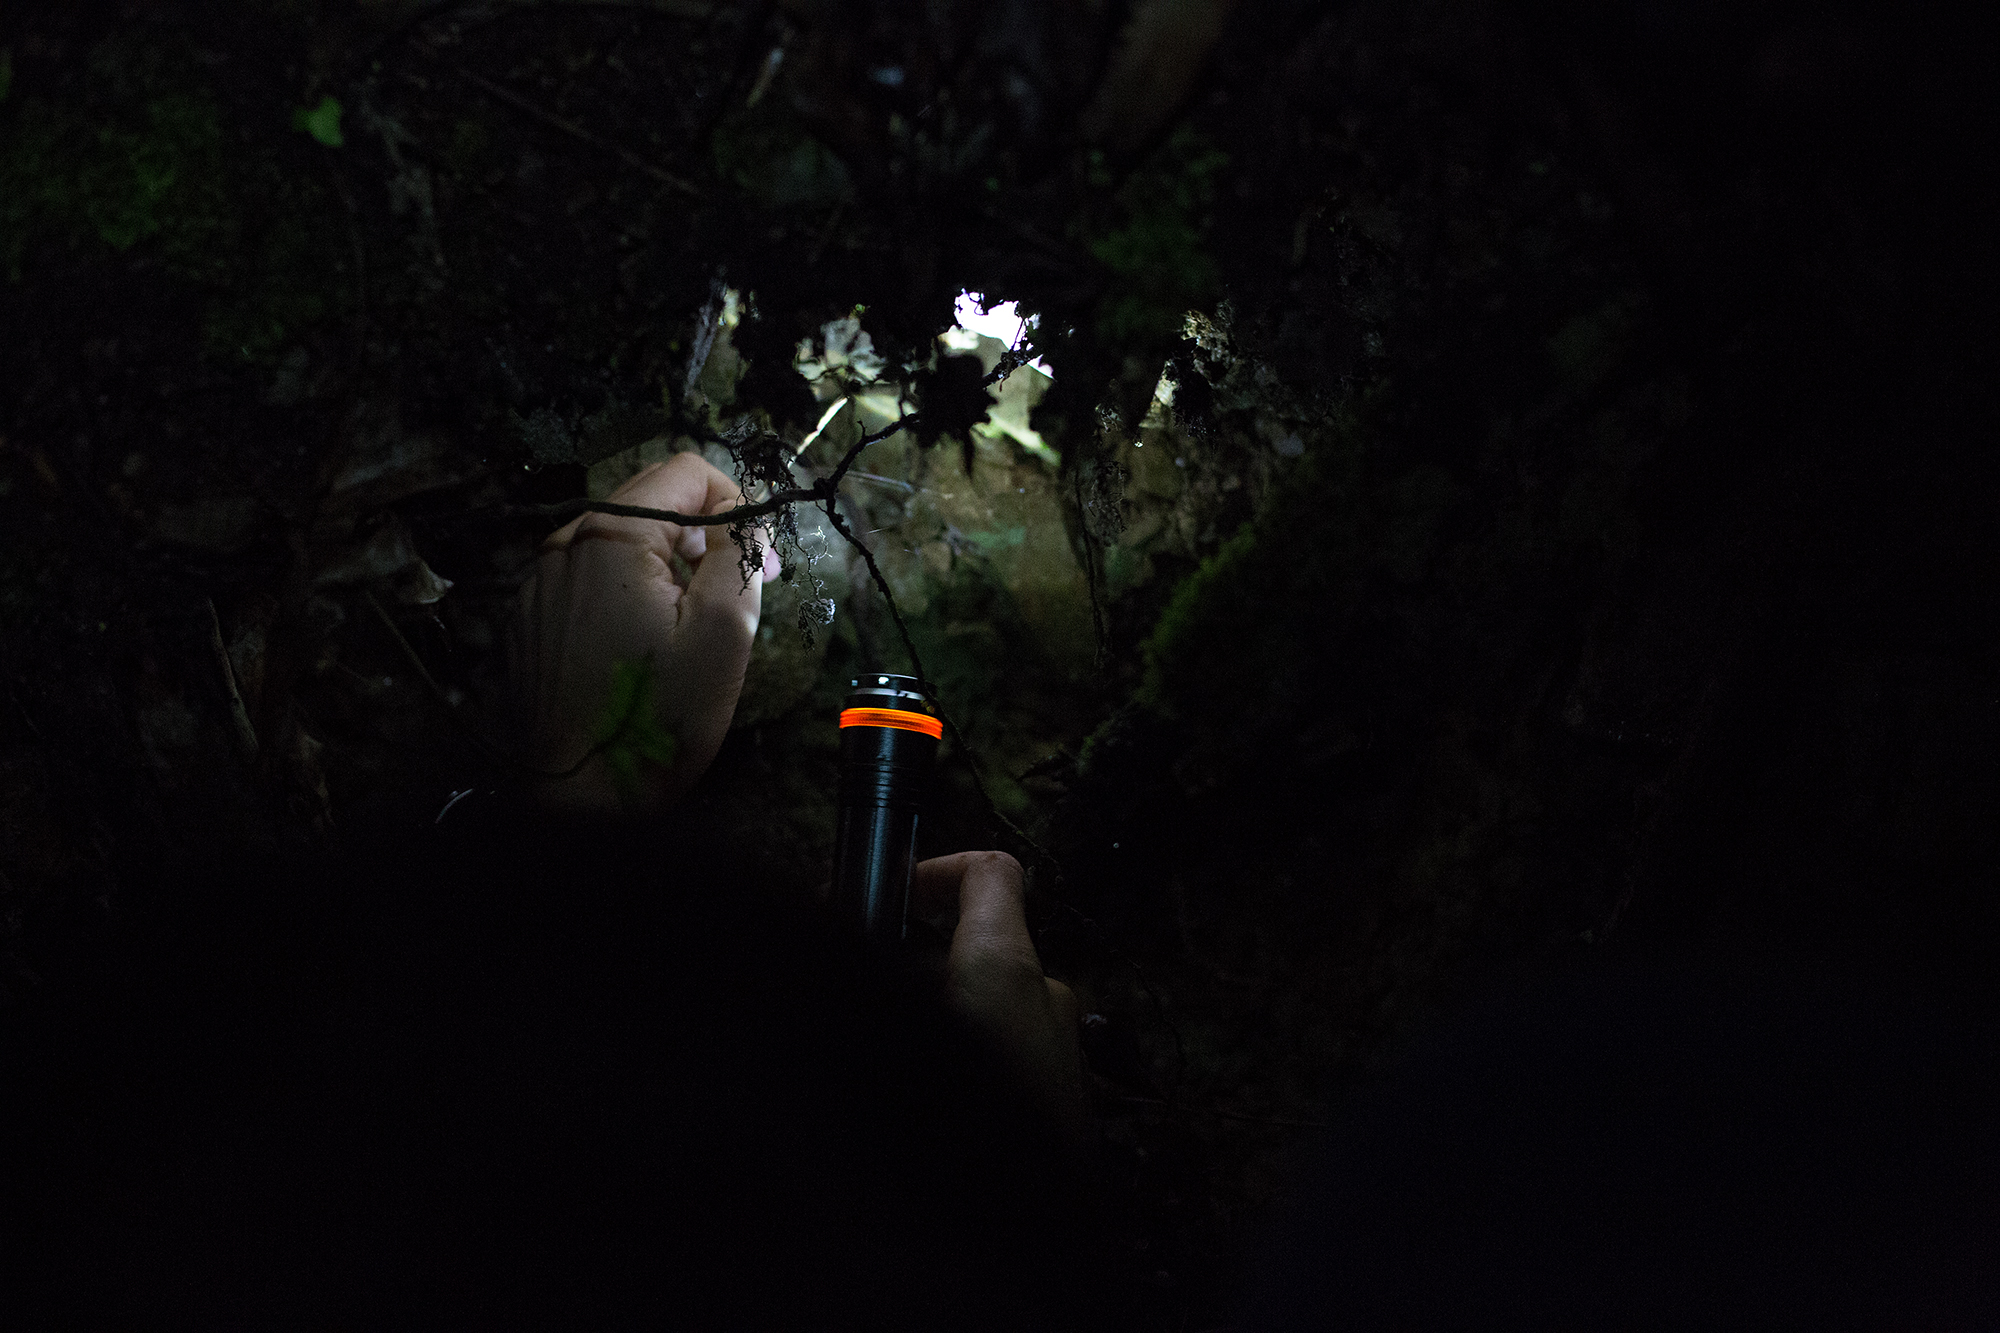 Nikki is pointing to the little strings produced by the glow worms in side this bank. When all torches were switched off we saw pretty little blue lights.